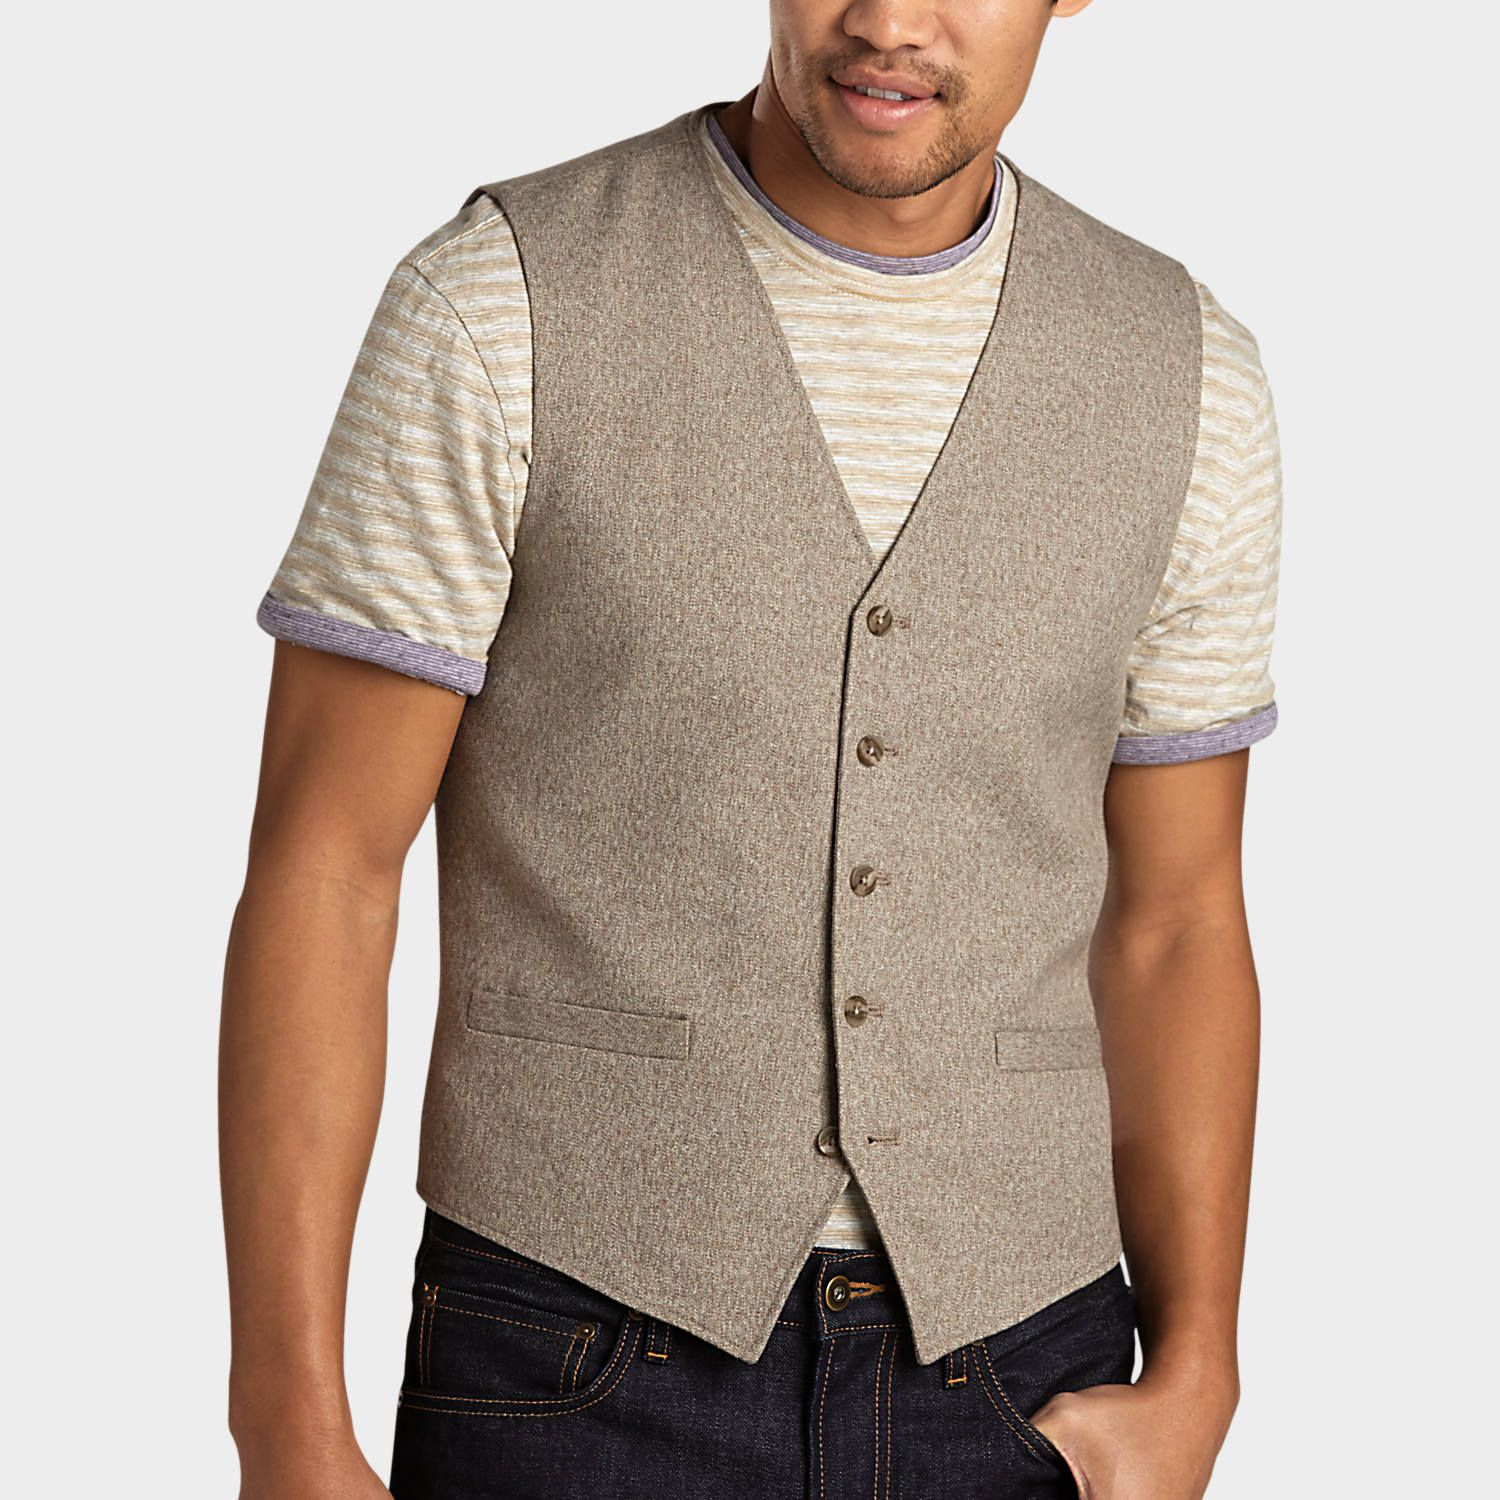 Pict j ferrar modern fit 1 - Buy A Joseph Abboud Taupe Modern Fit Vest And Other Tailored Vests At Men S Wearhouse